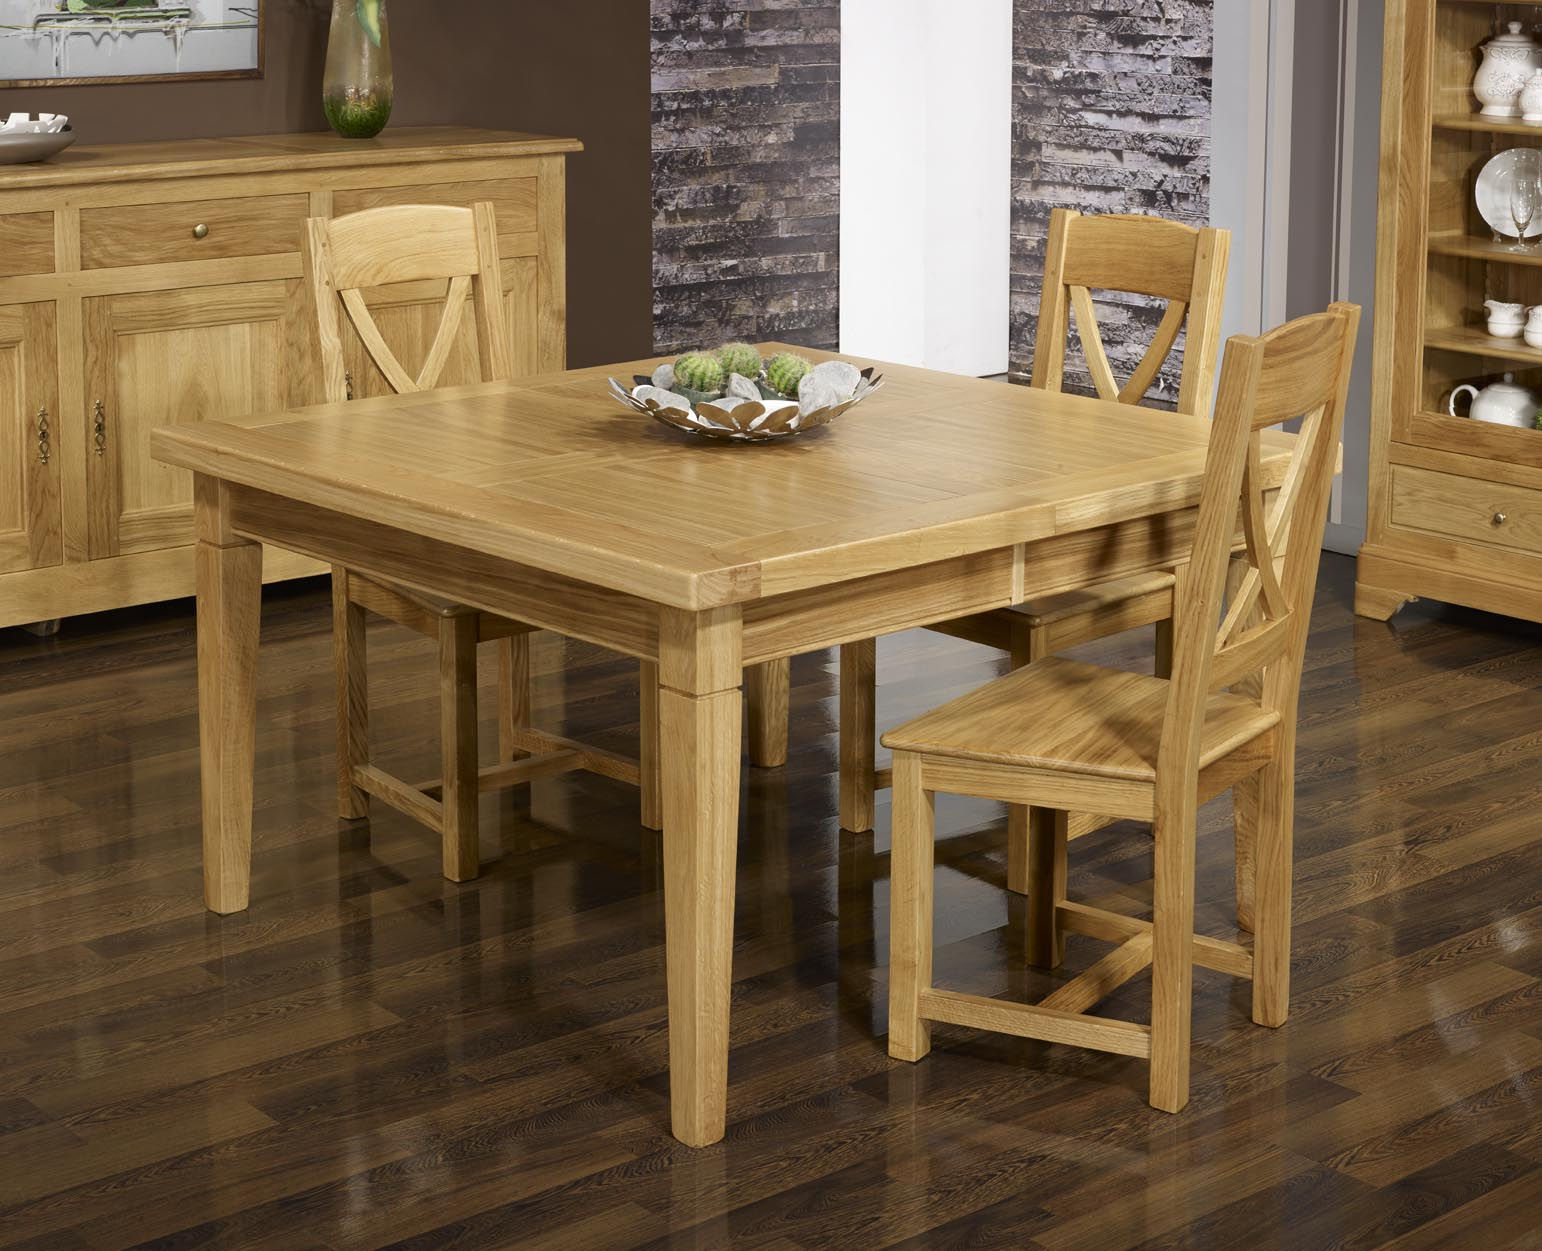 table de repas carr e en ch ne massif 150x150 meuble en ch ne massif. Black Bedroom Furniture Sets. Home Design Ideas